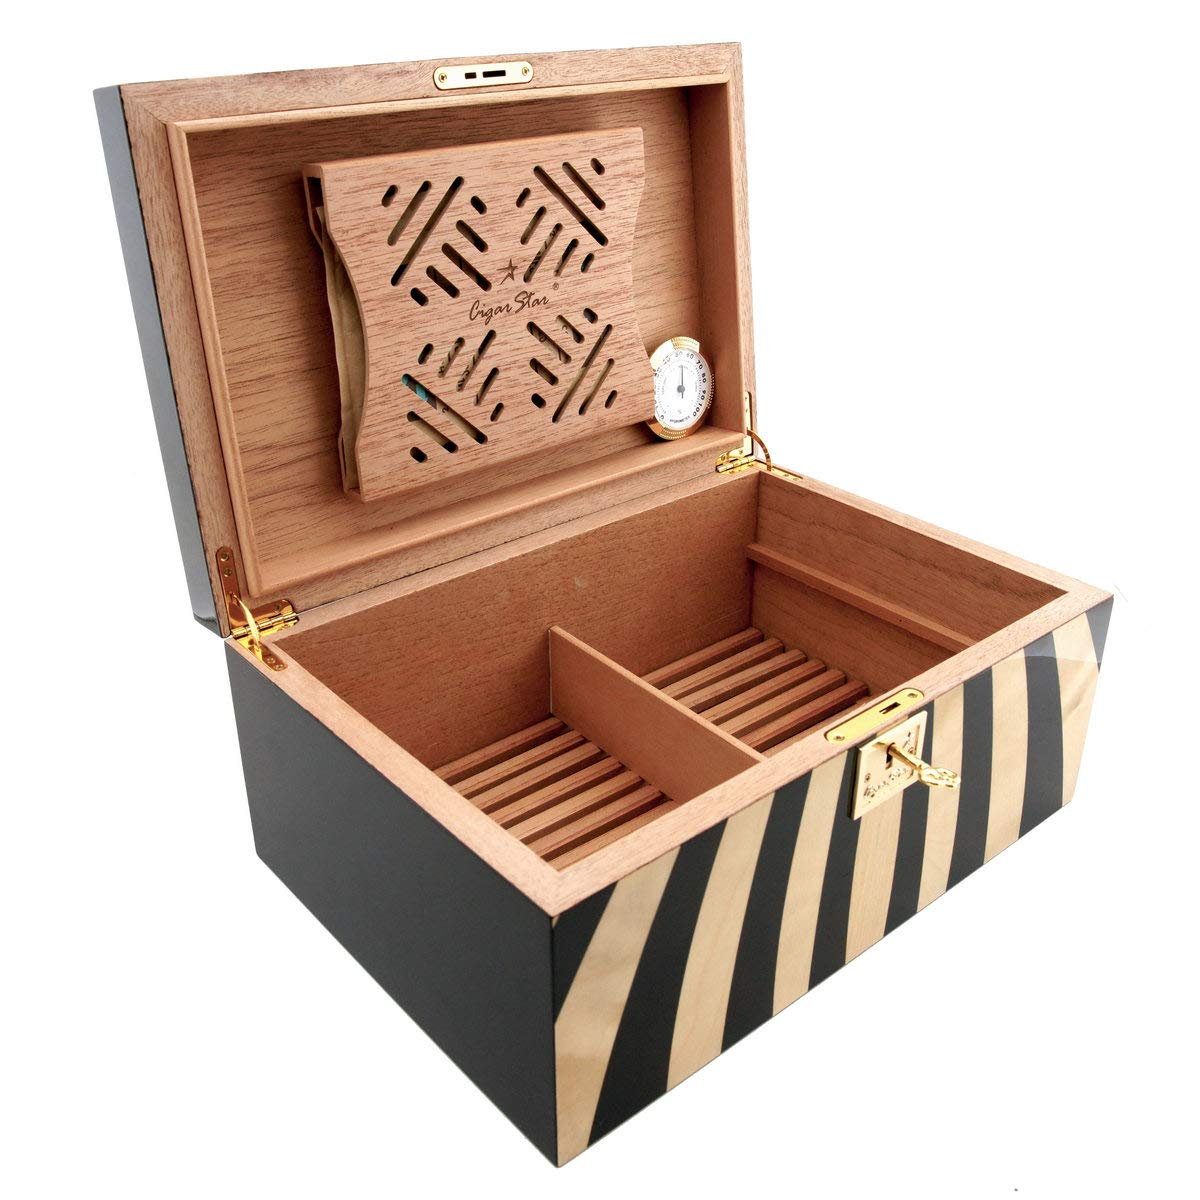 Cigar Star Boketto Humidor Limited Edition Optical Illusion Made from Wood! by Cigar Star (Image #6)